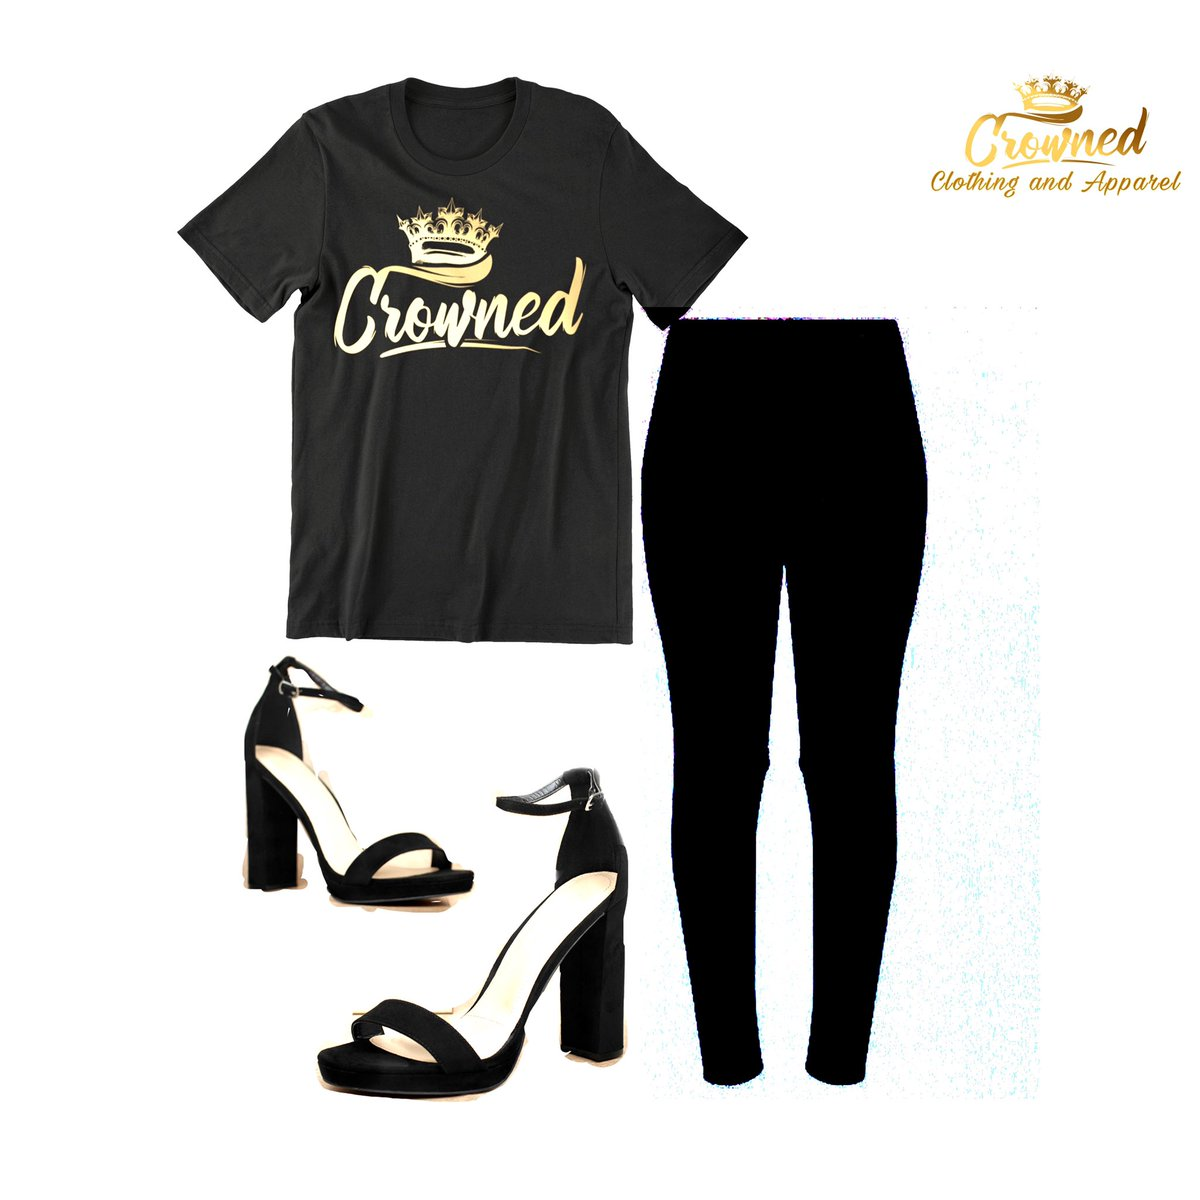 Check out this Crowned outfit! You can never go wrong with an all black. . . . . . #polyvoreoutfits #polyvoreoutfit #polyvorestyle #polyvorefashion #crowned #businesscasualoutfit #businesscasualwoman #businesscasualattire #allblackeverything #allblackoutfit #fashion #Fashionistapic.twitter.com/j8hQcvc4BL